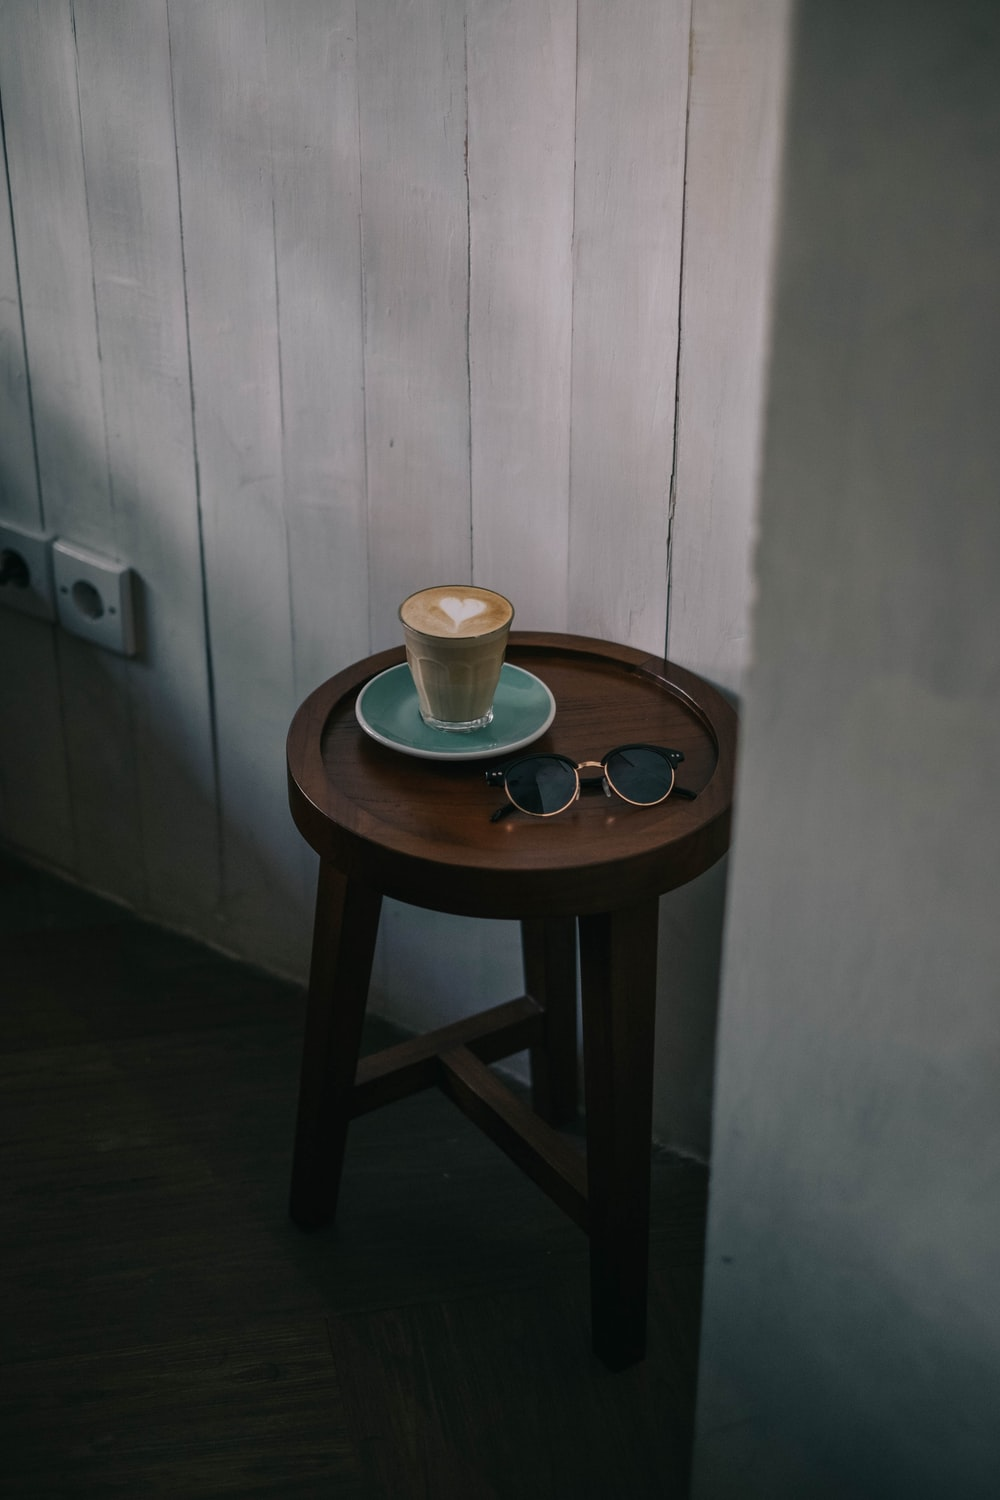 coffee latte with heart art on brown wooden end table beside black sunglasses